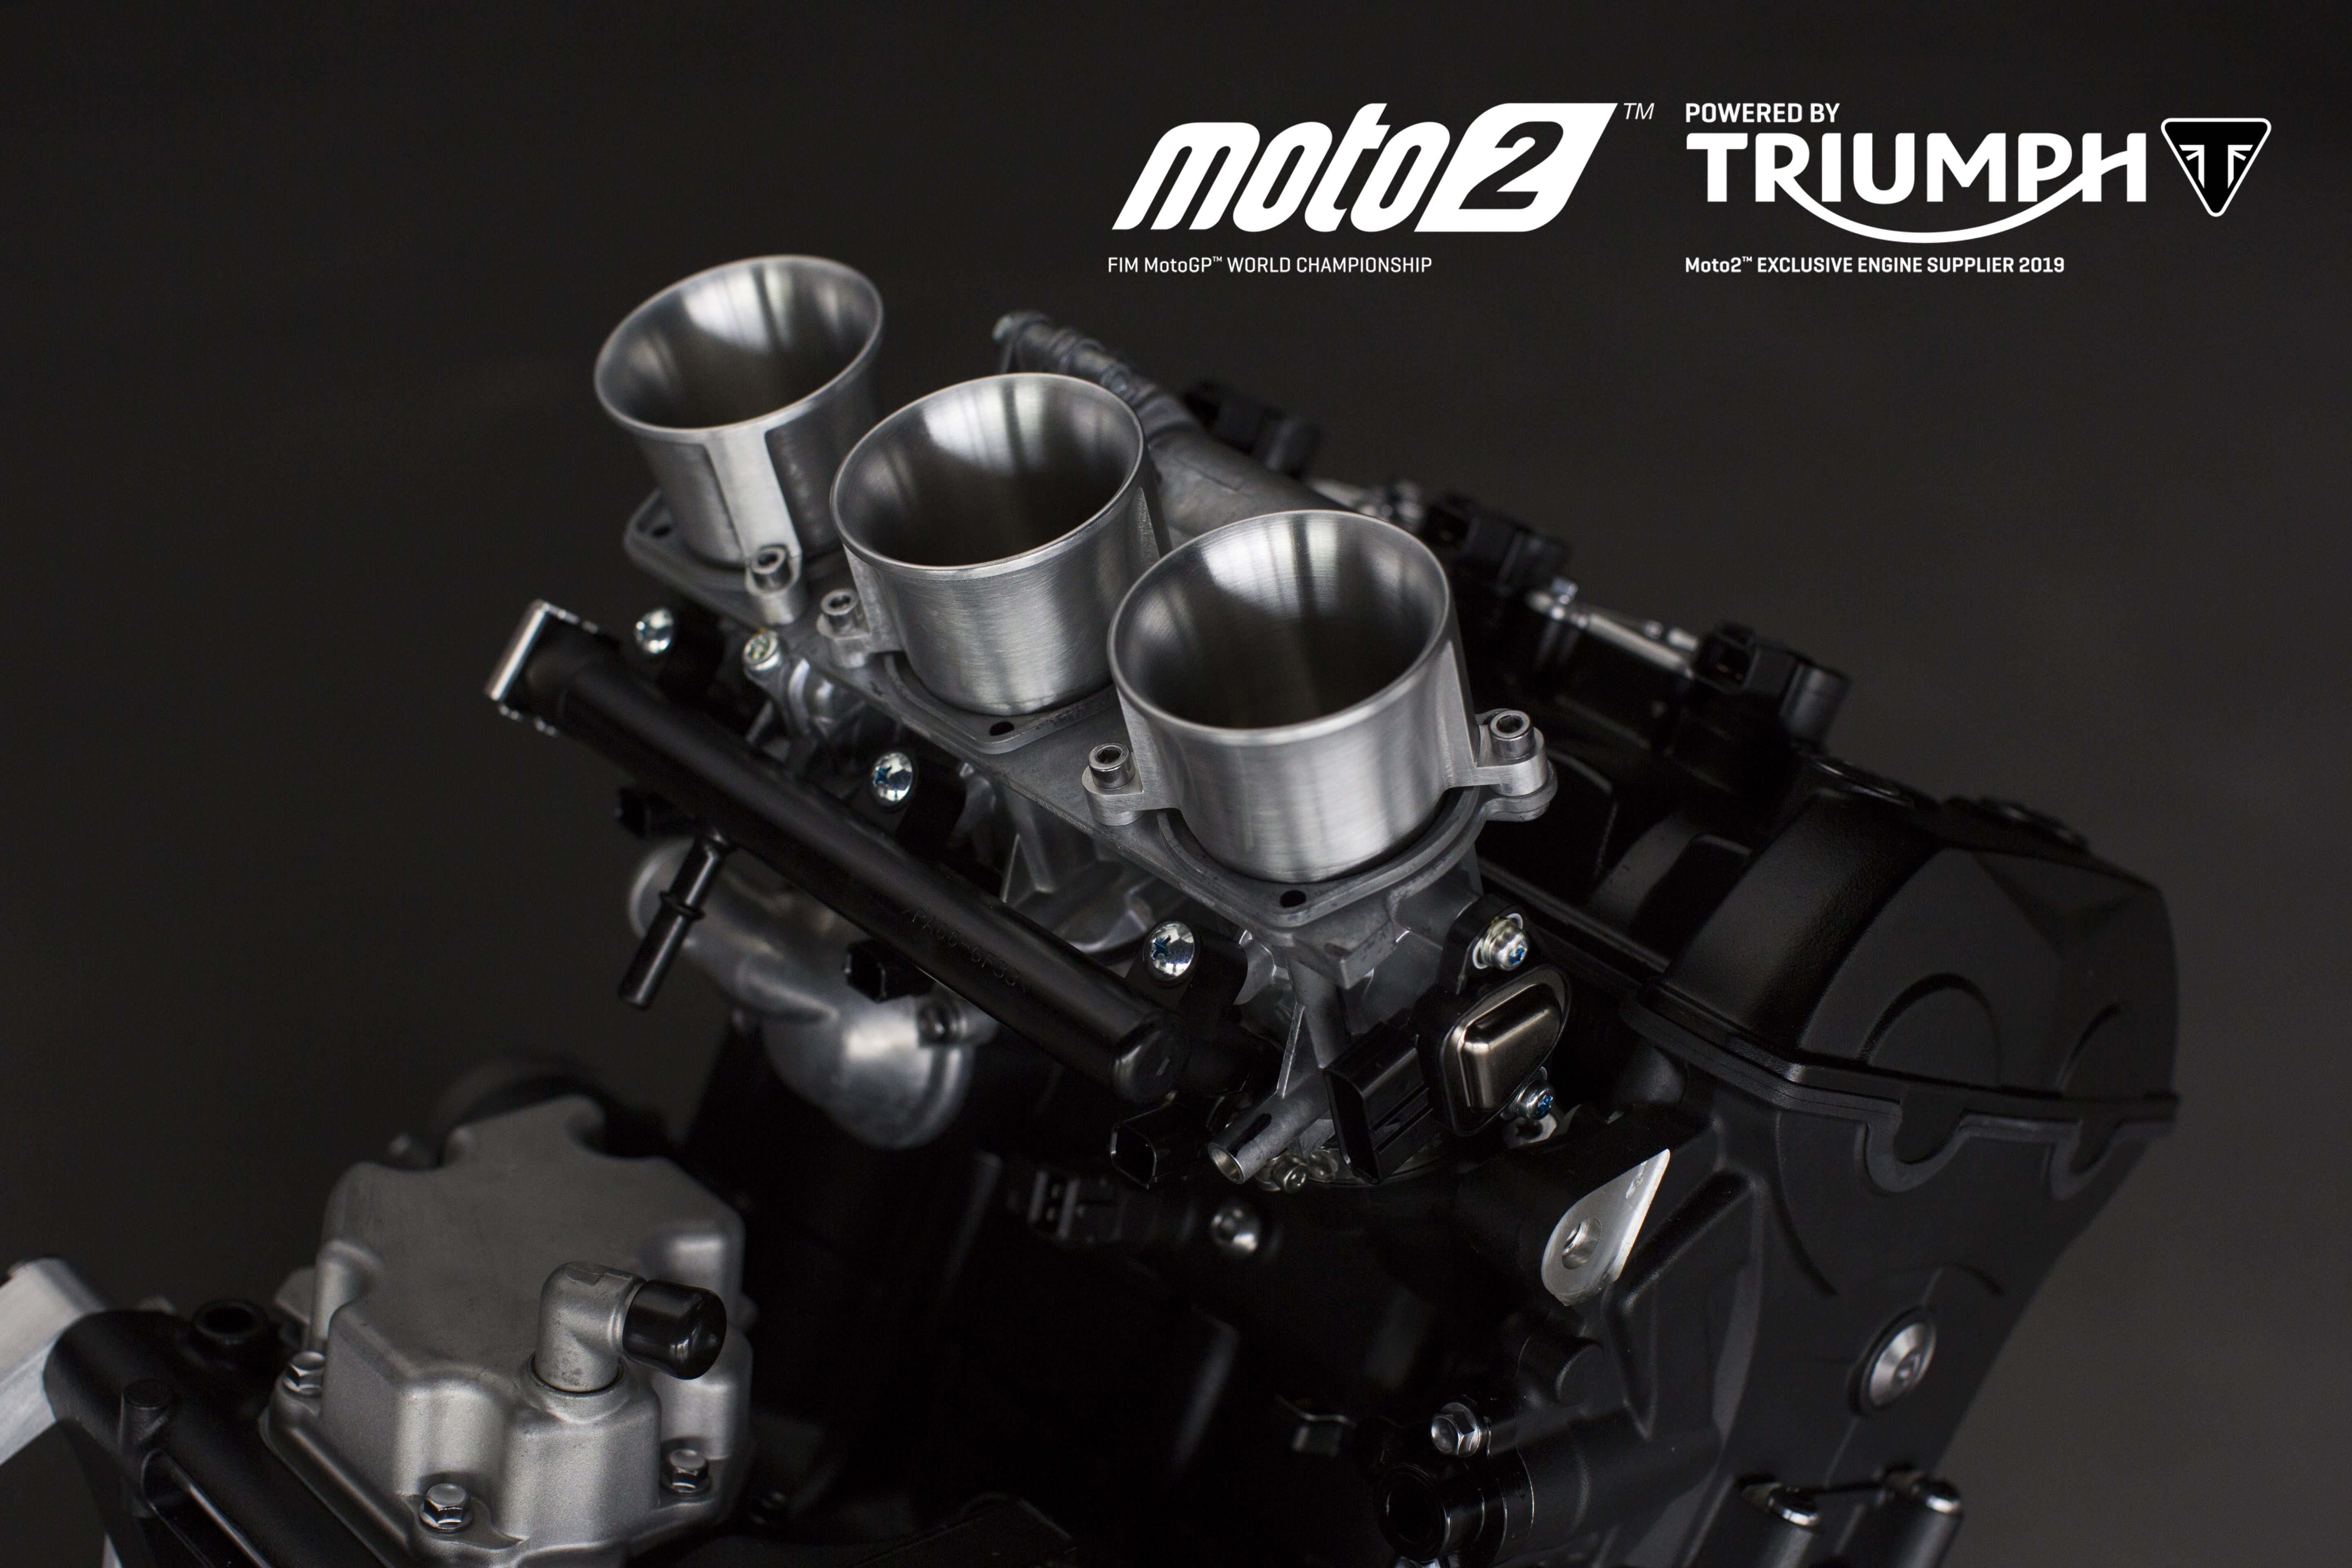 Triumph to Provide 765cc Triple Engines For Moto2 From 2019